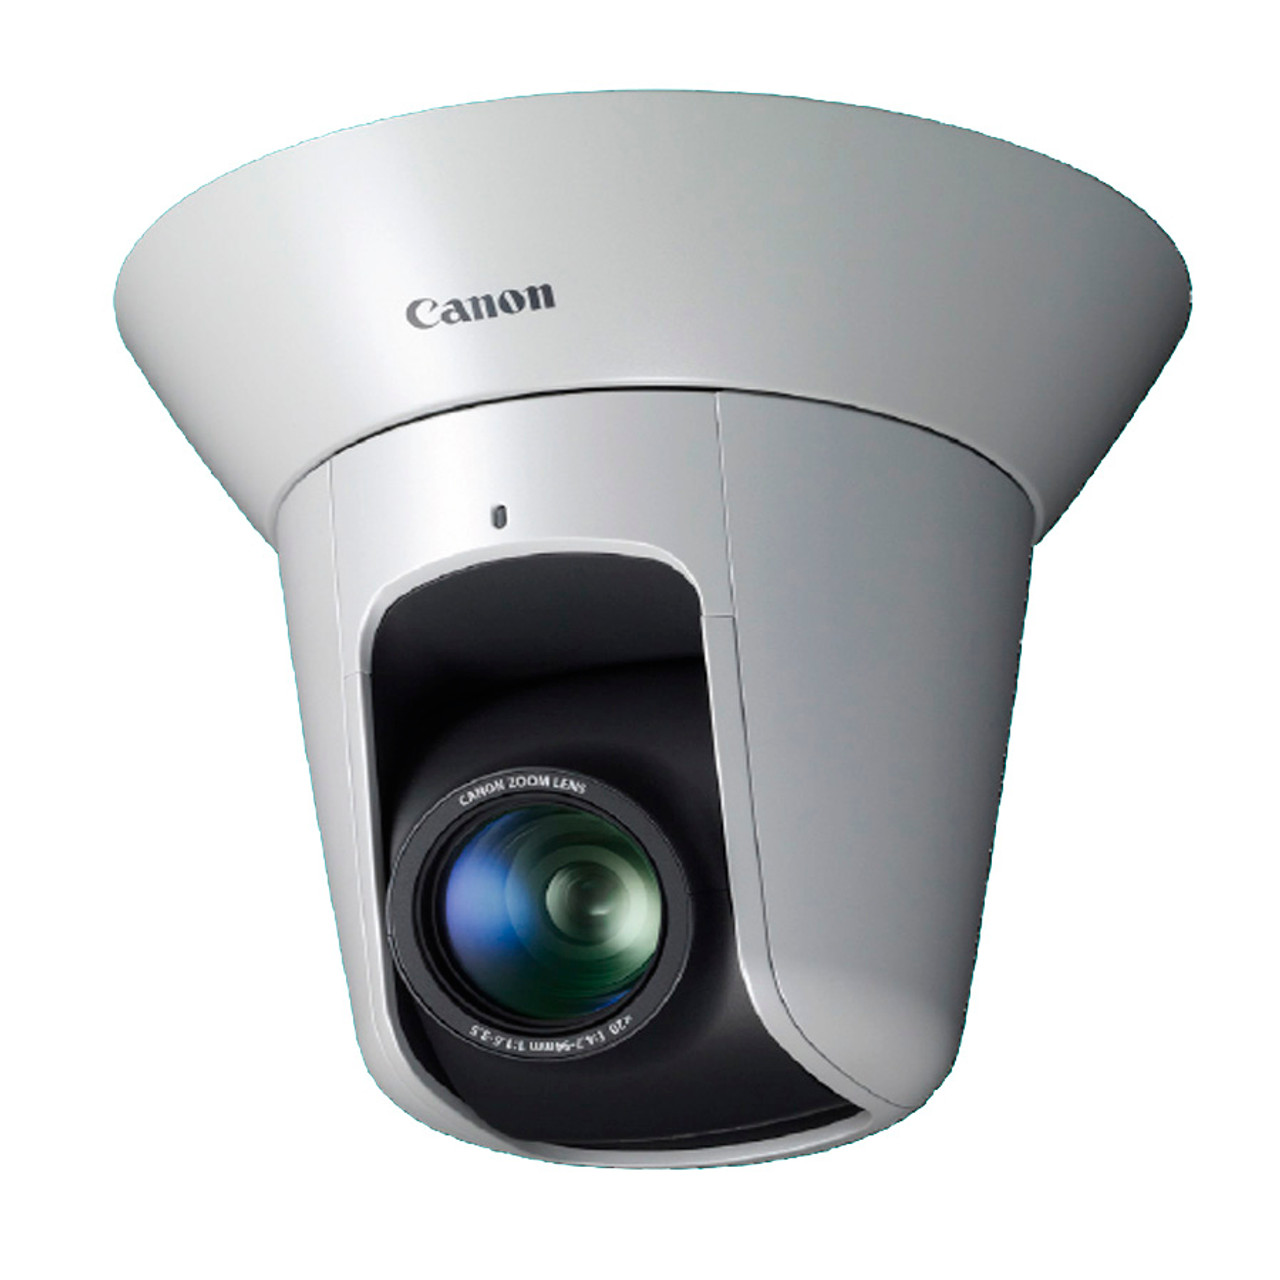 AXIS Canon VB-M44 1 3MP Indoor PTZ IP Security Camera 2542C001 - 20x  Optical Zoom, Silver